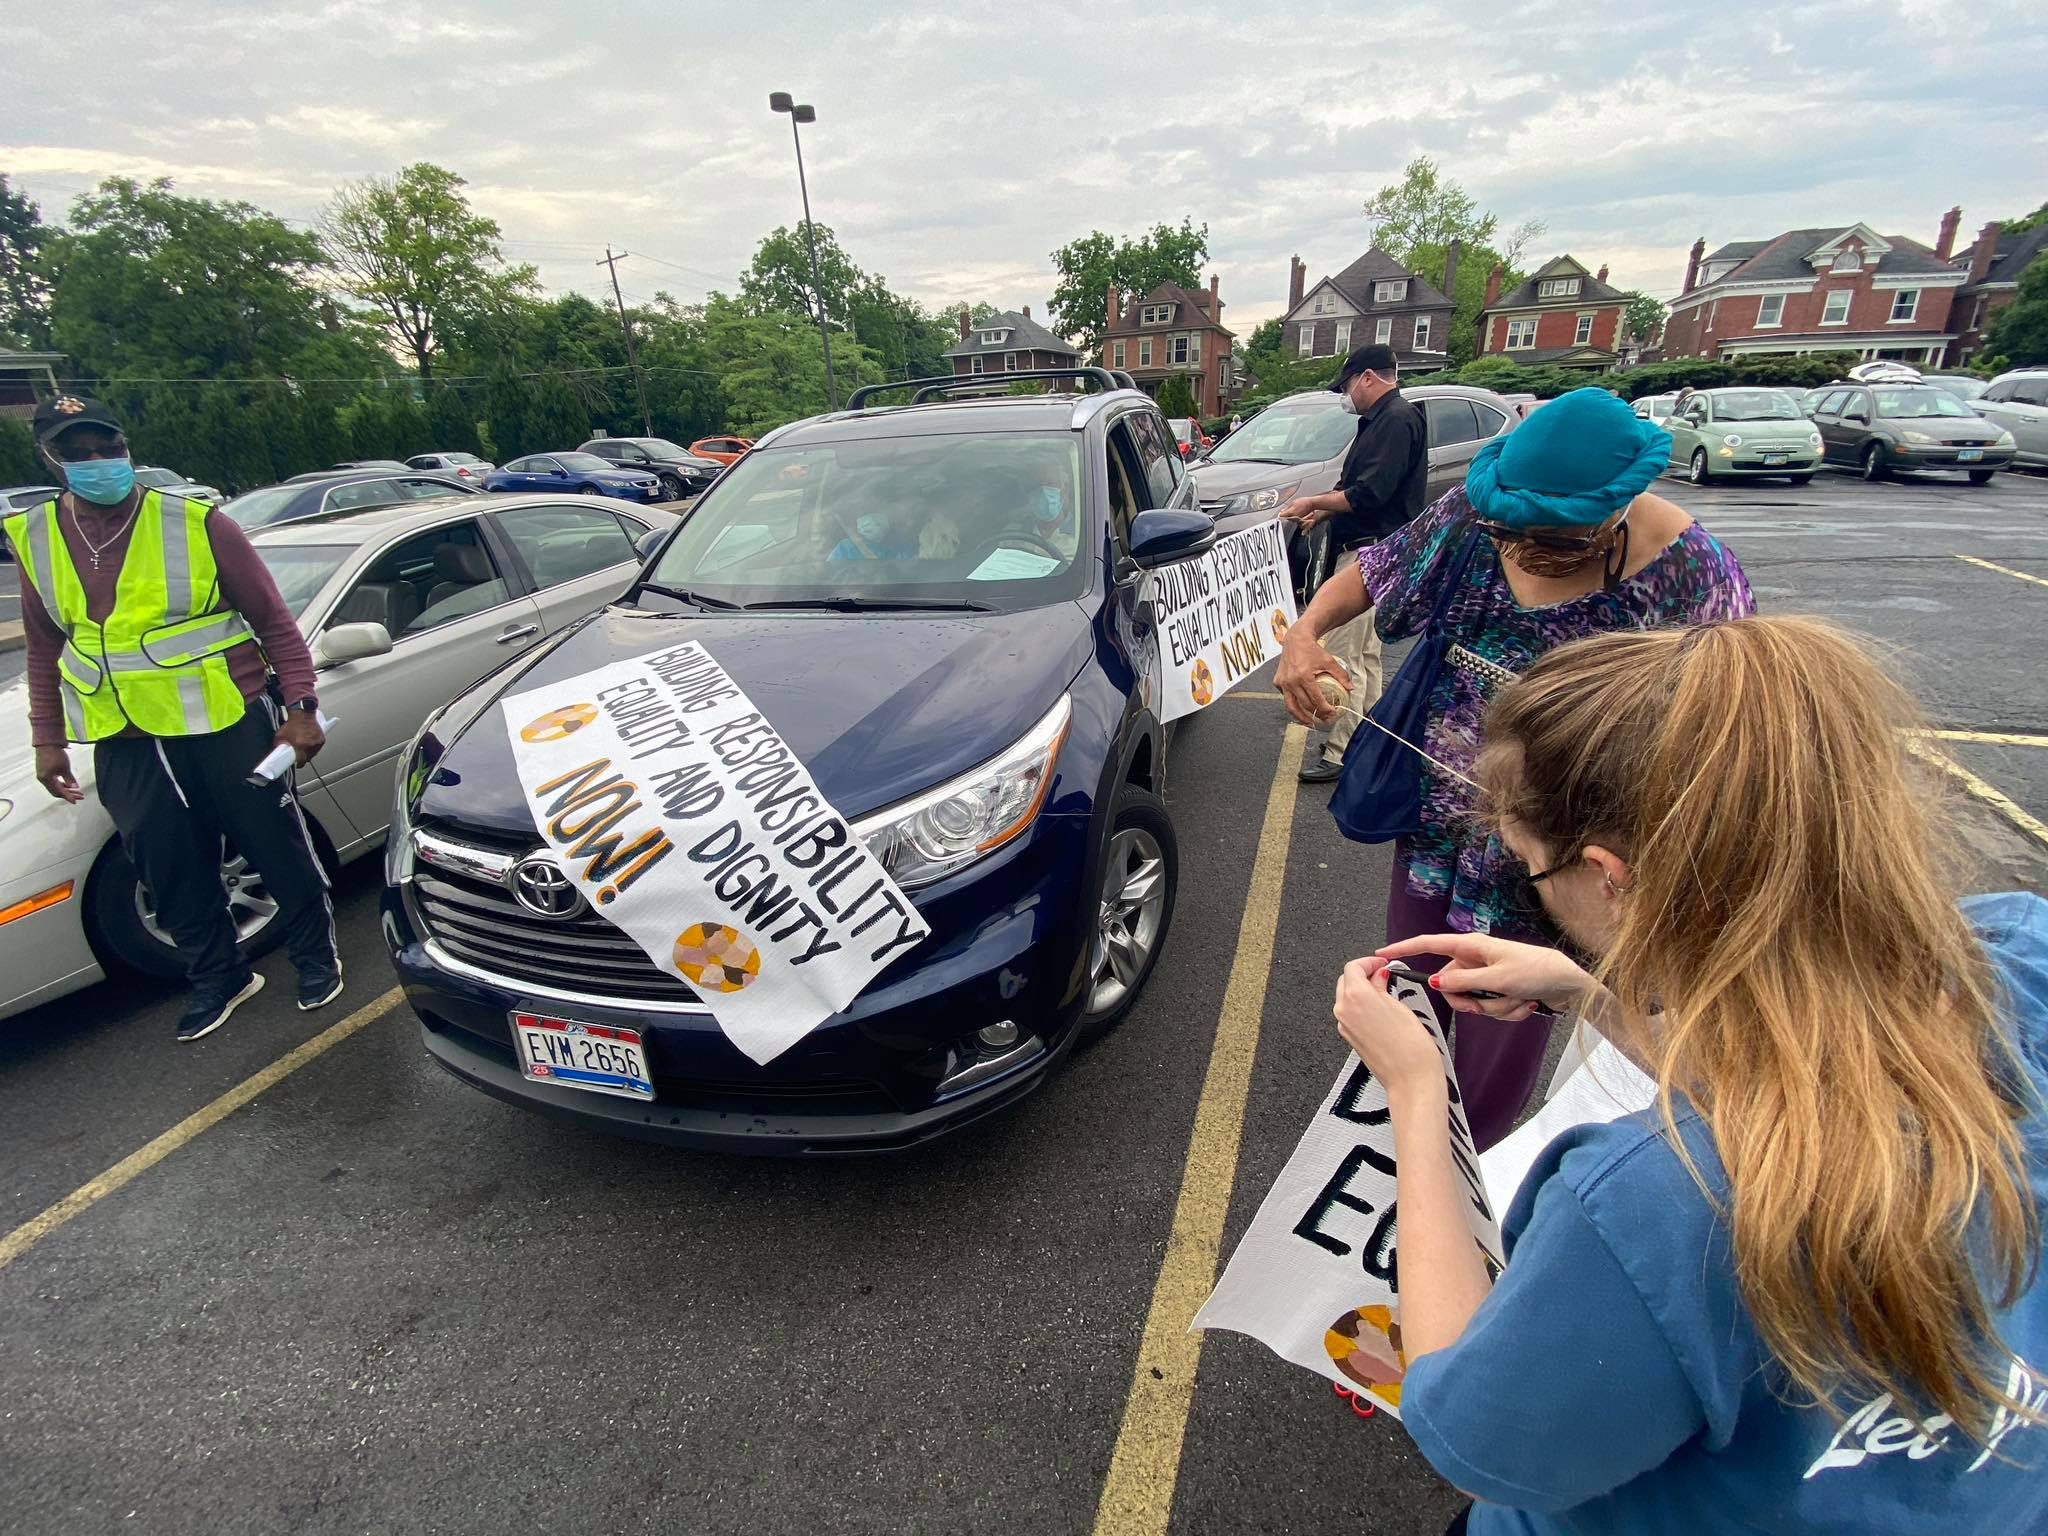 'Caravan of Change' takes a peaceful protest to Columbus streets